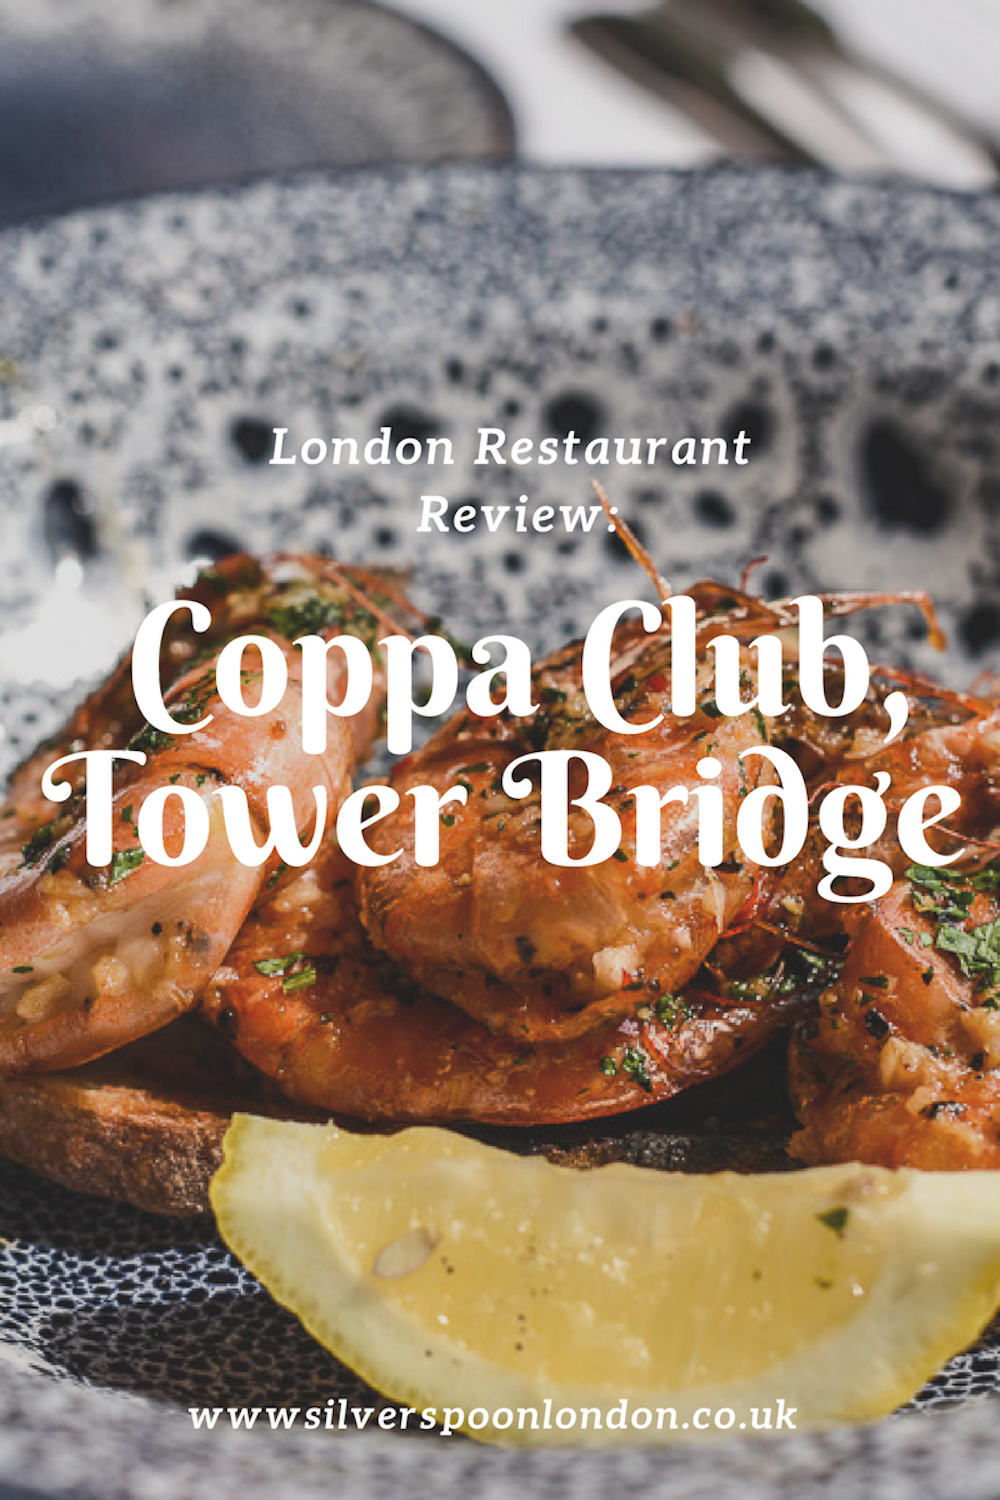 London Restaurant Review: Coppa Club